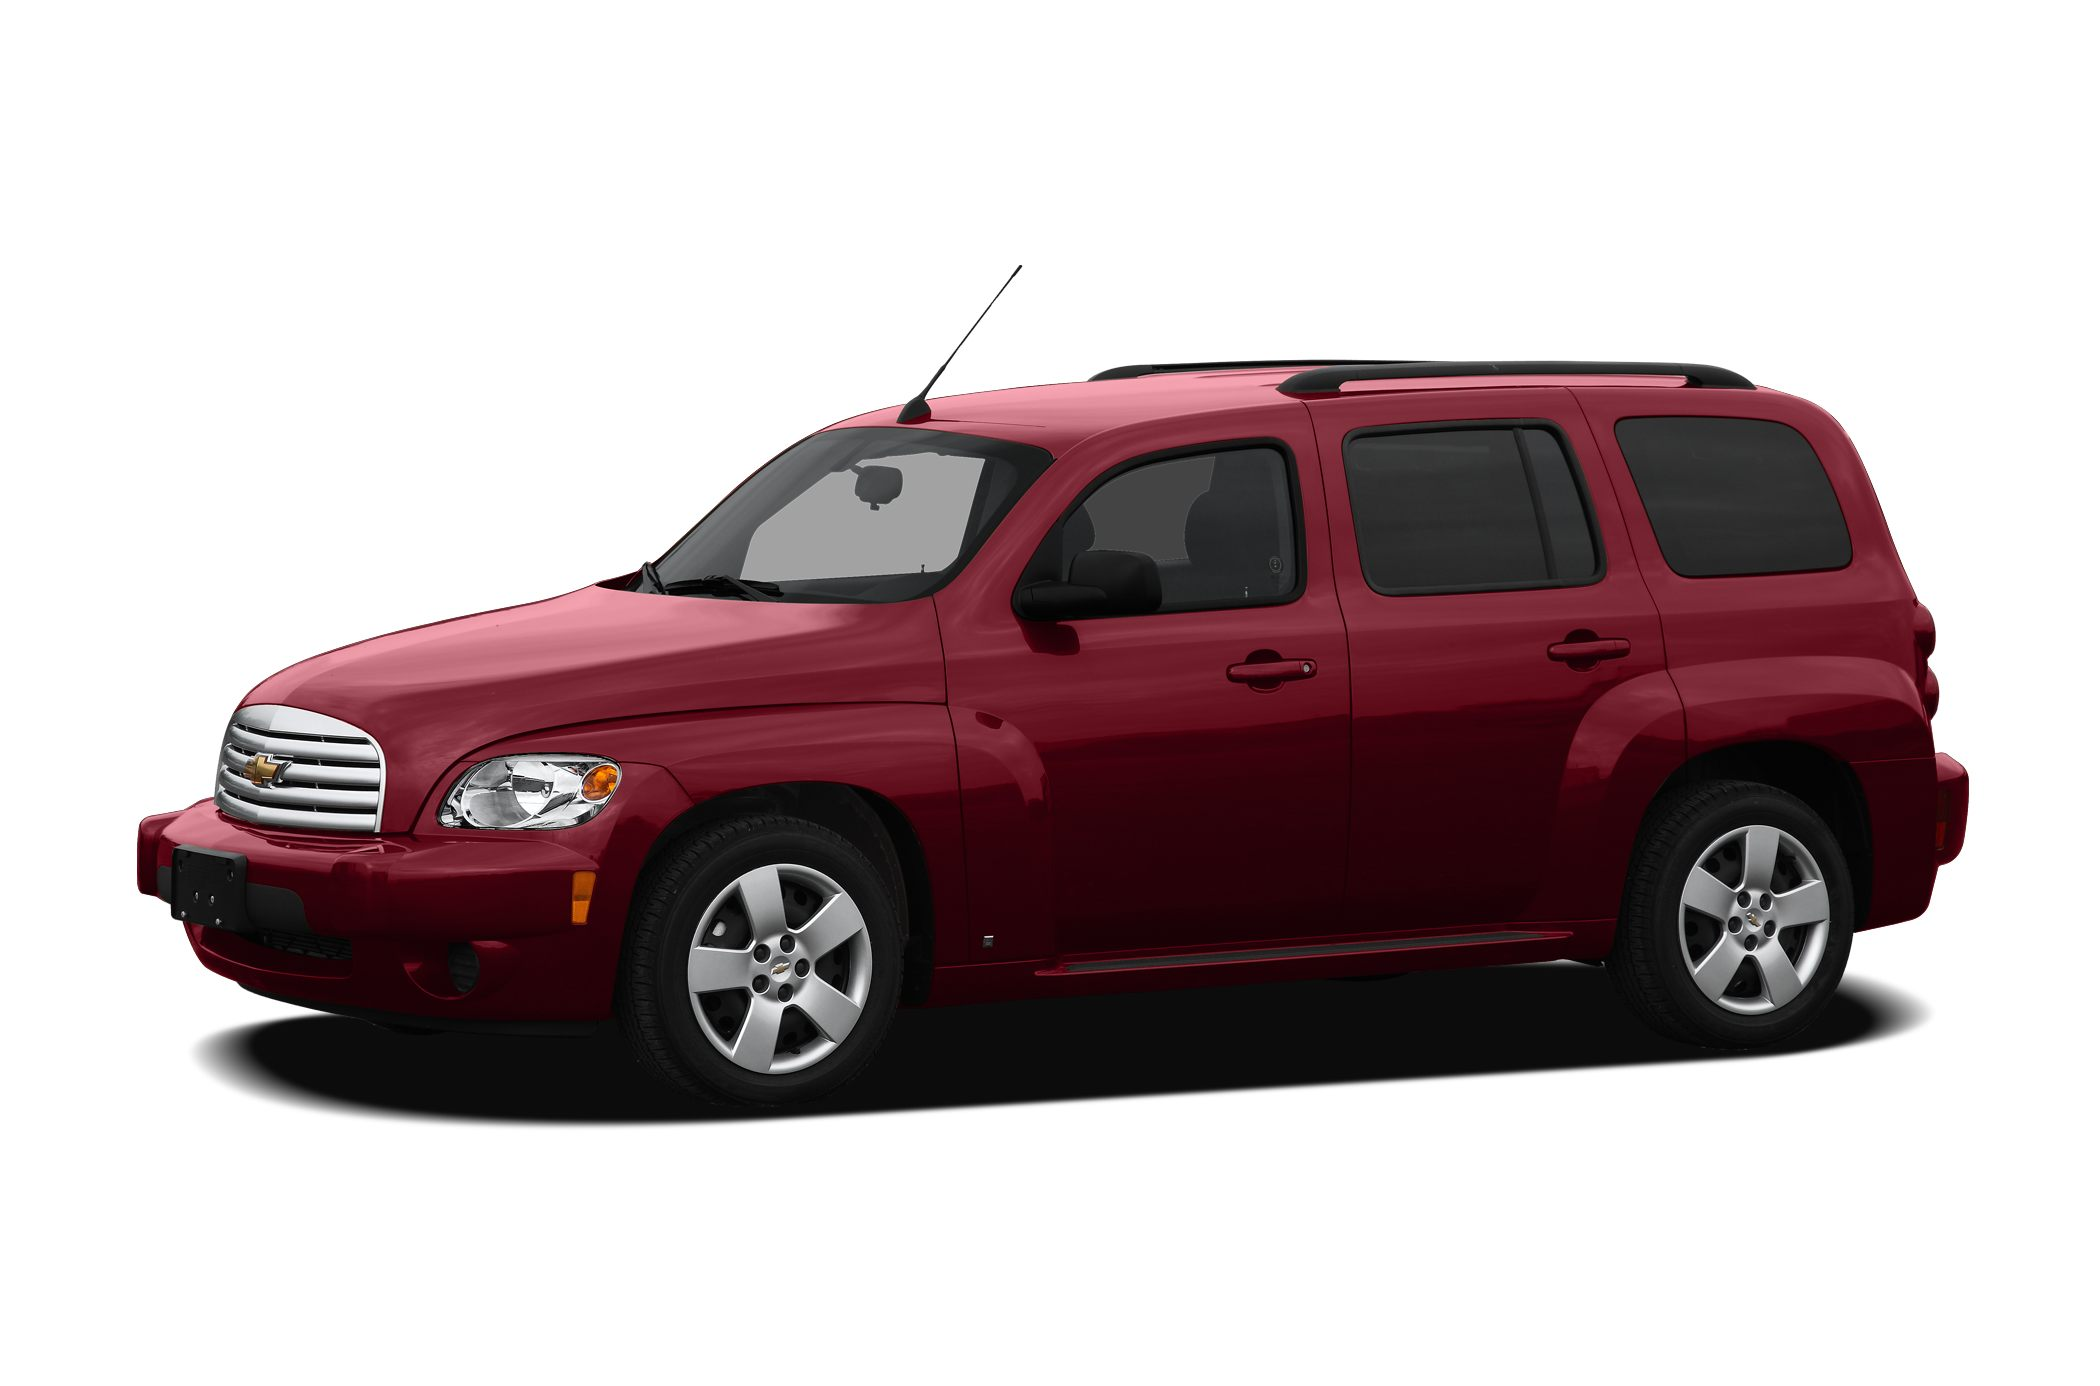 2010 Chevrolet Hhr Owner Reviews And Ratings